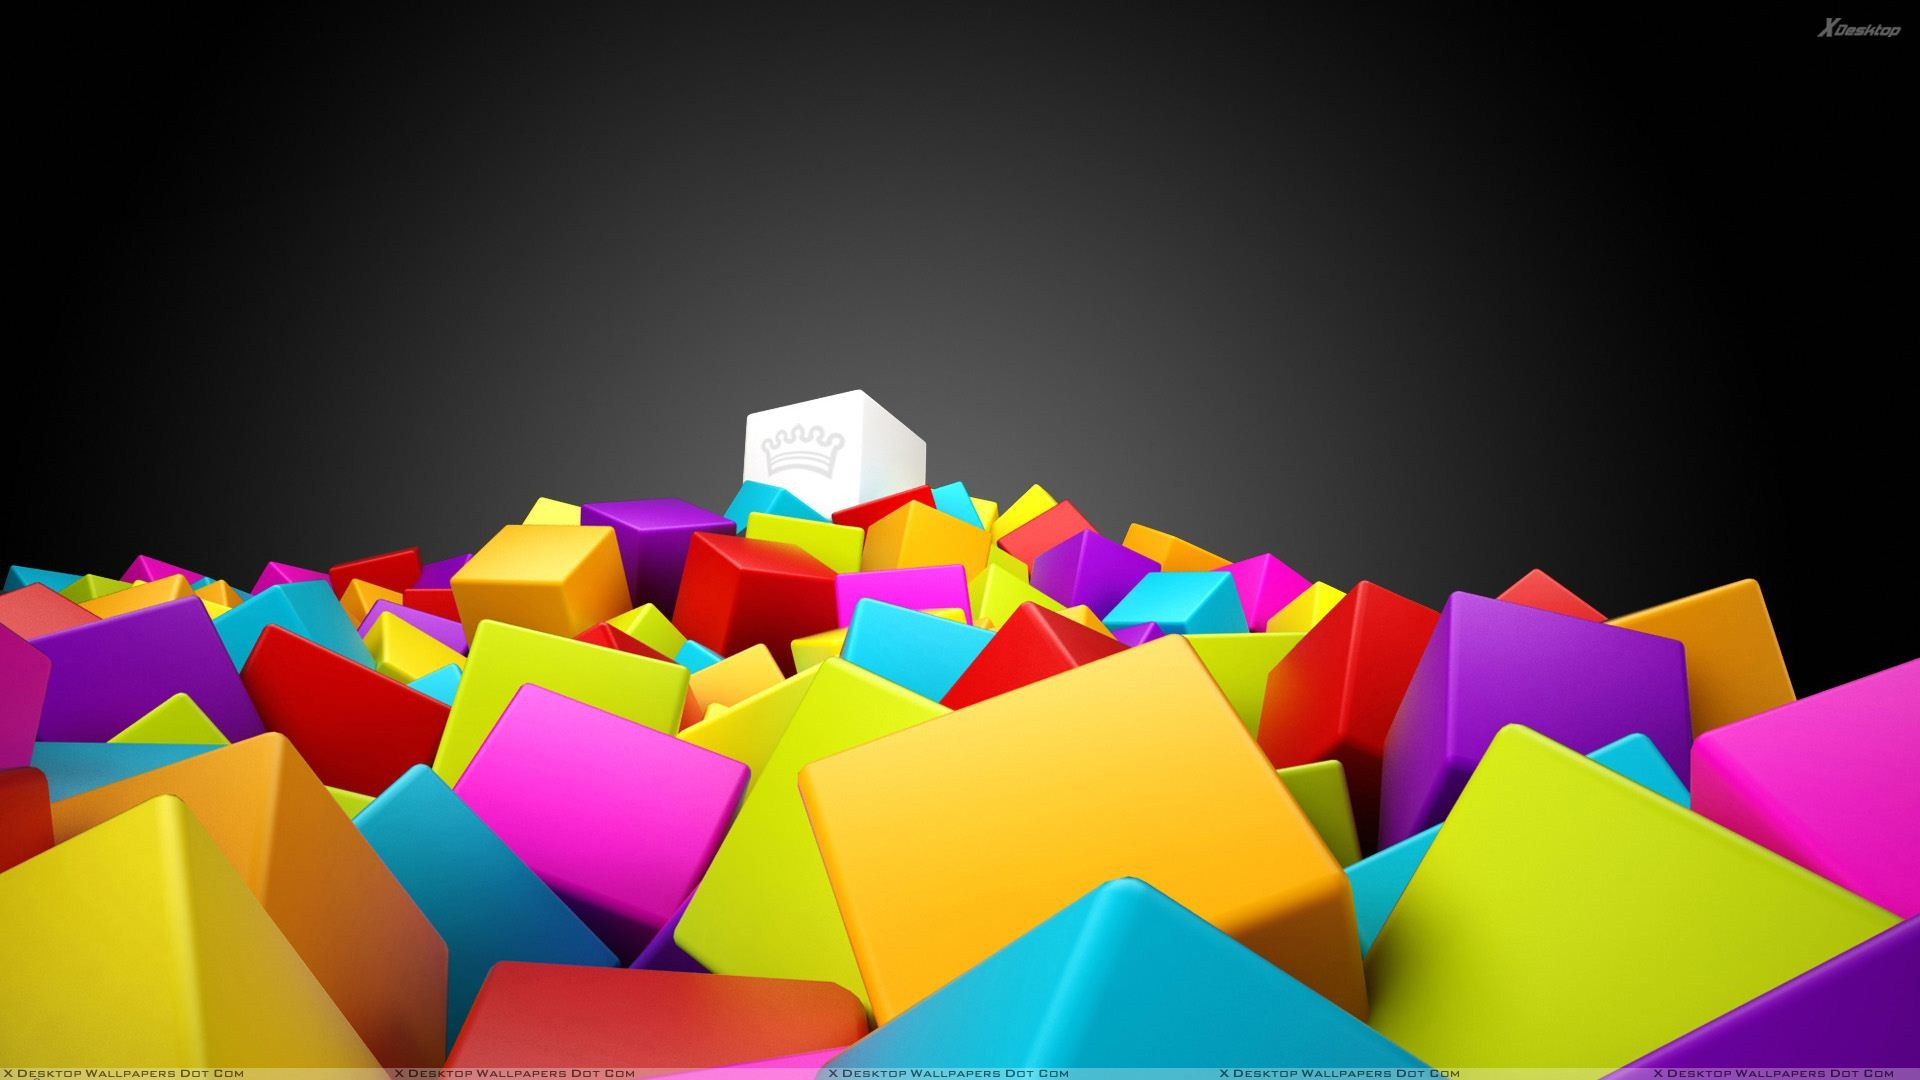 Res: 1920x1080, colorful-background-1190-hd-wallpapers.jpg » colorful-background-1190-hd- wallpapers.jpg